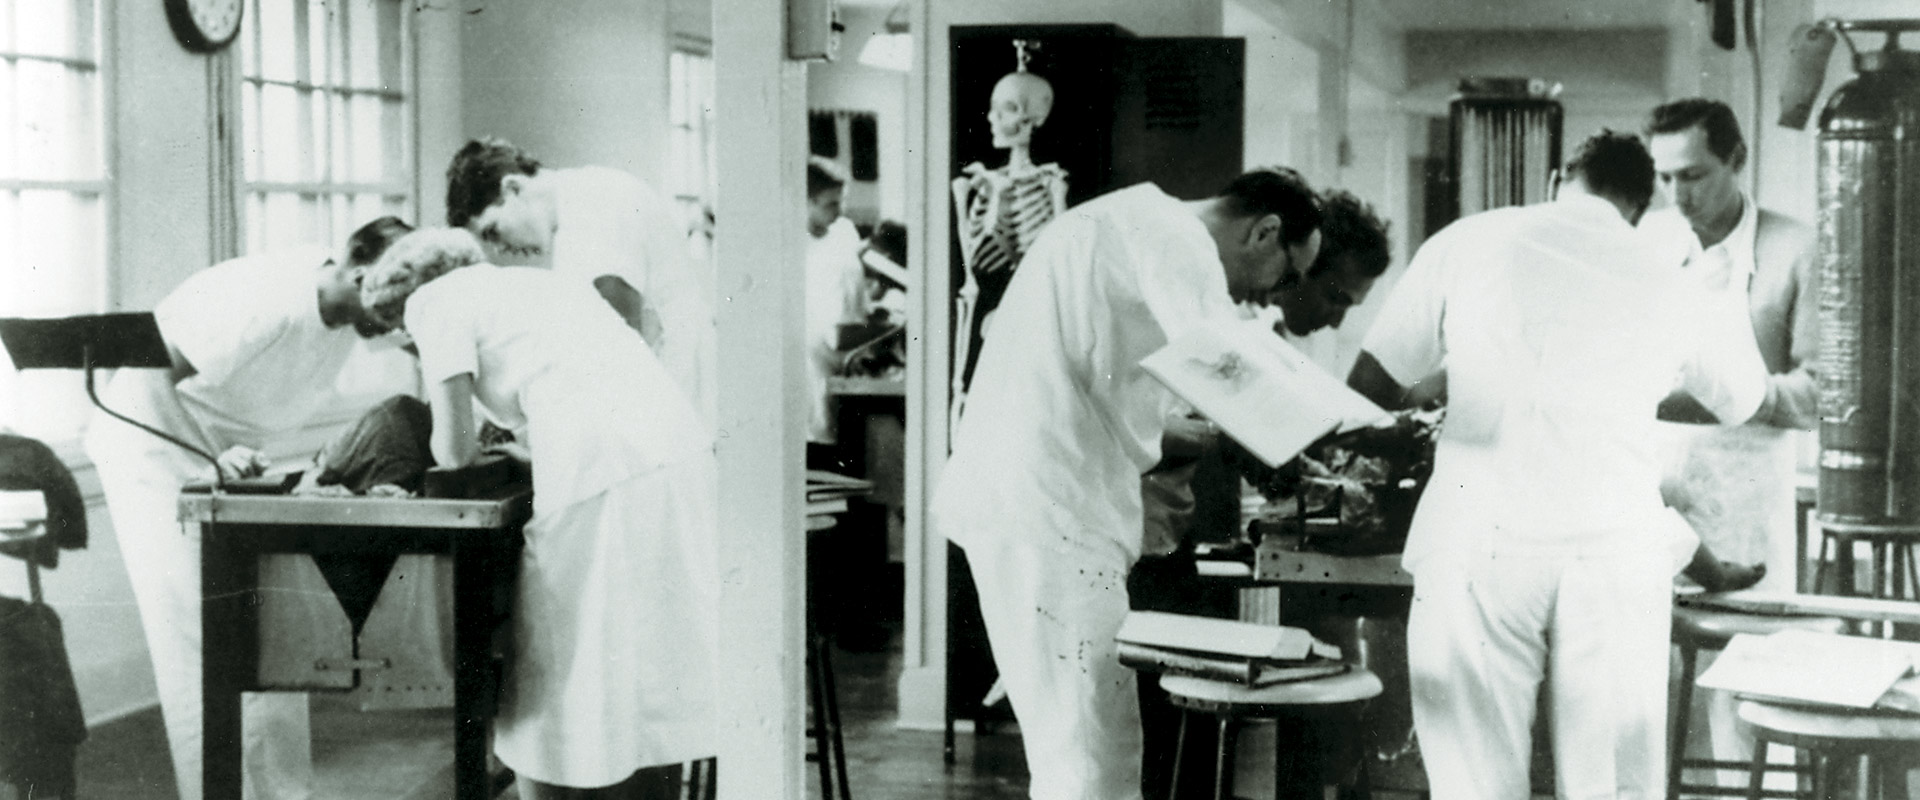 Florida first medical school opens at University of Miami picture of OR